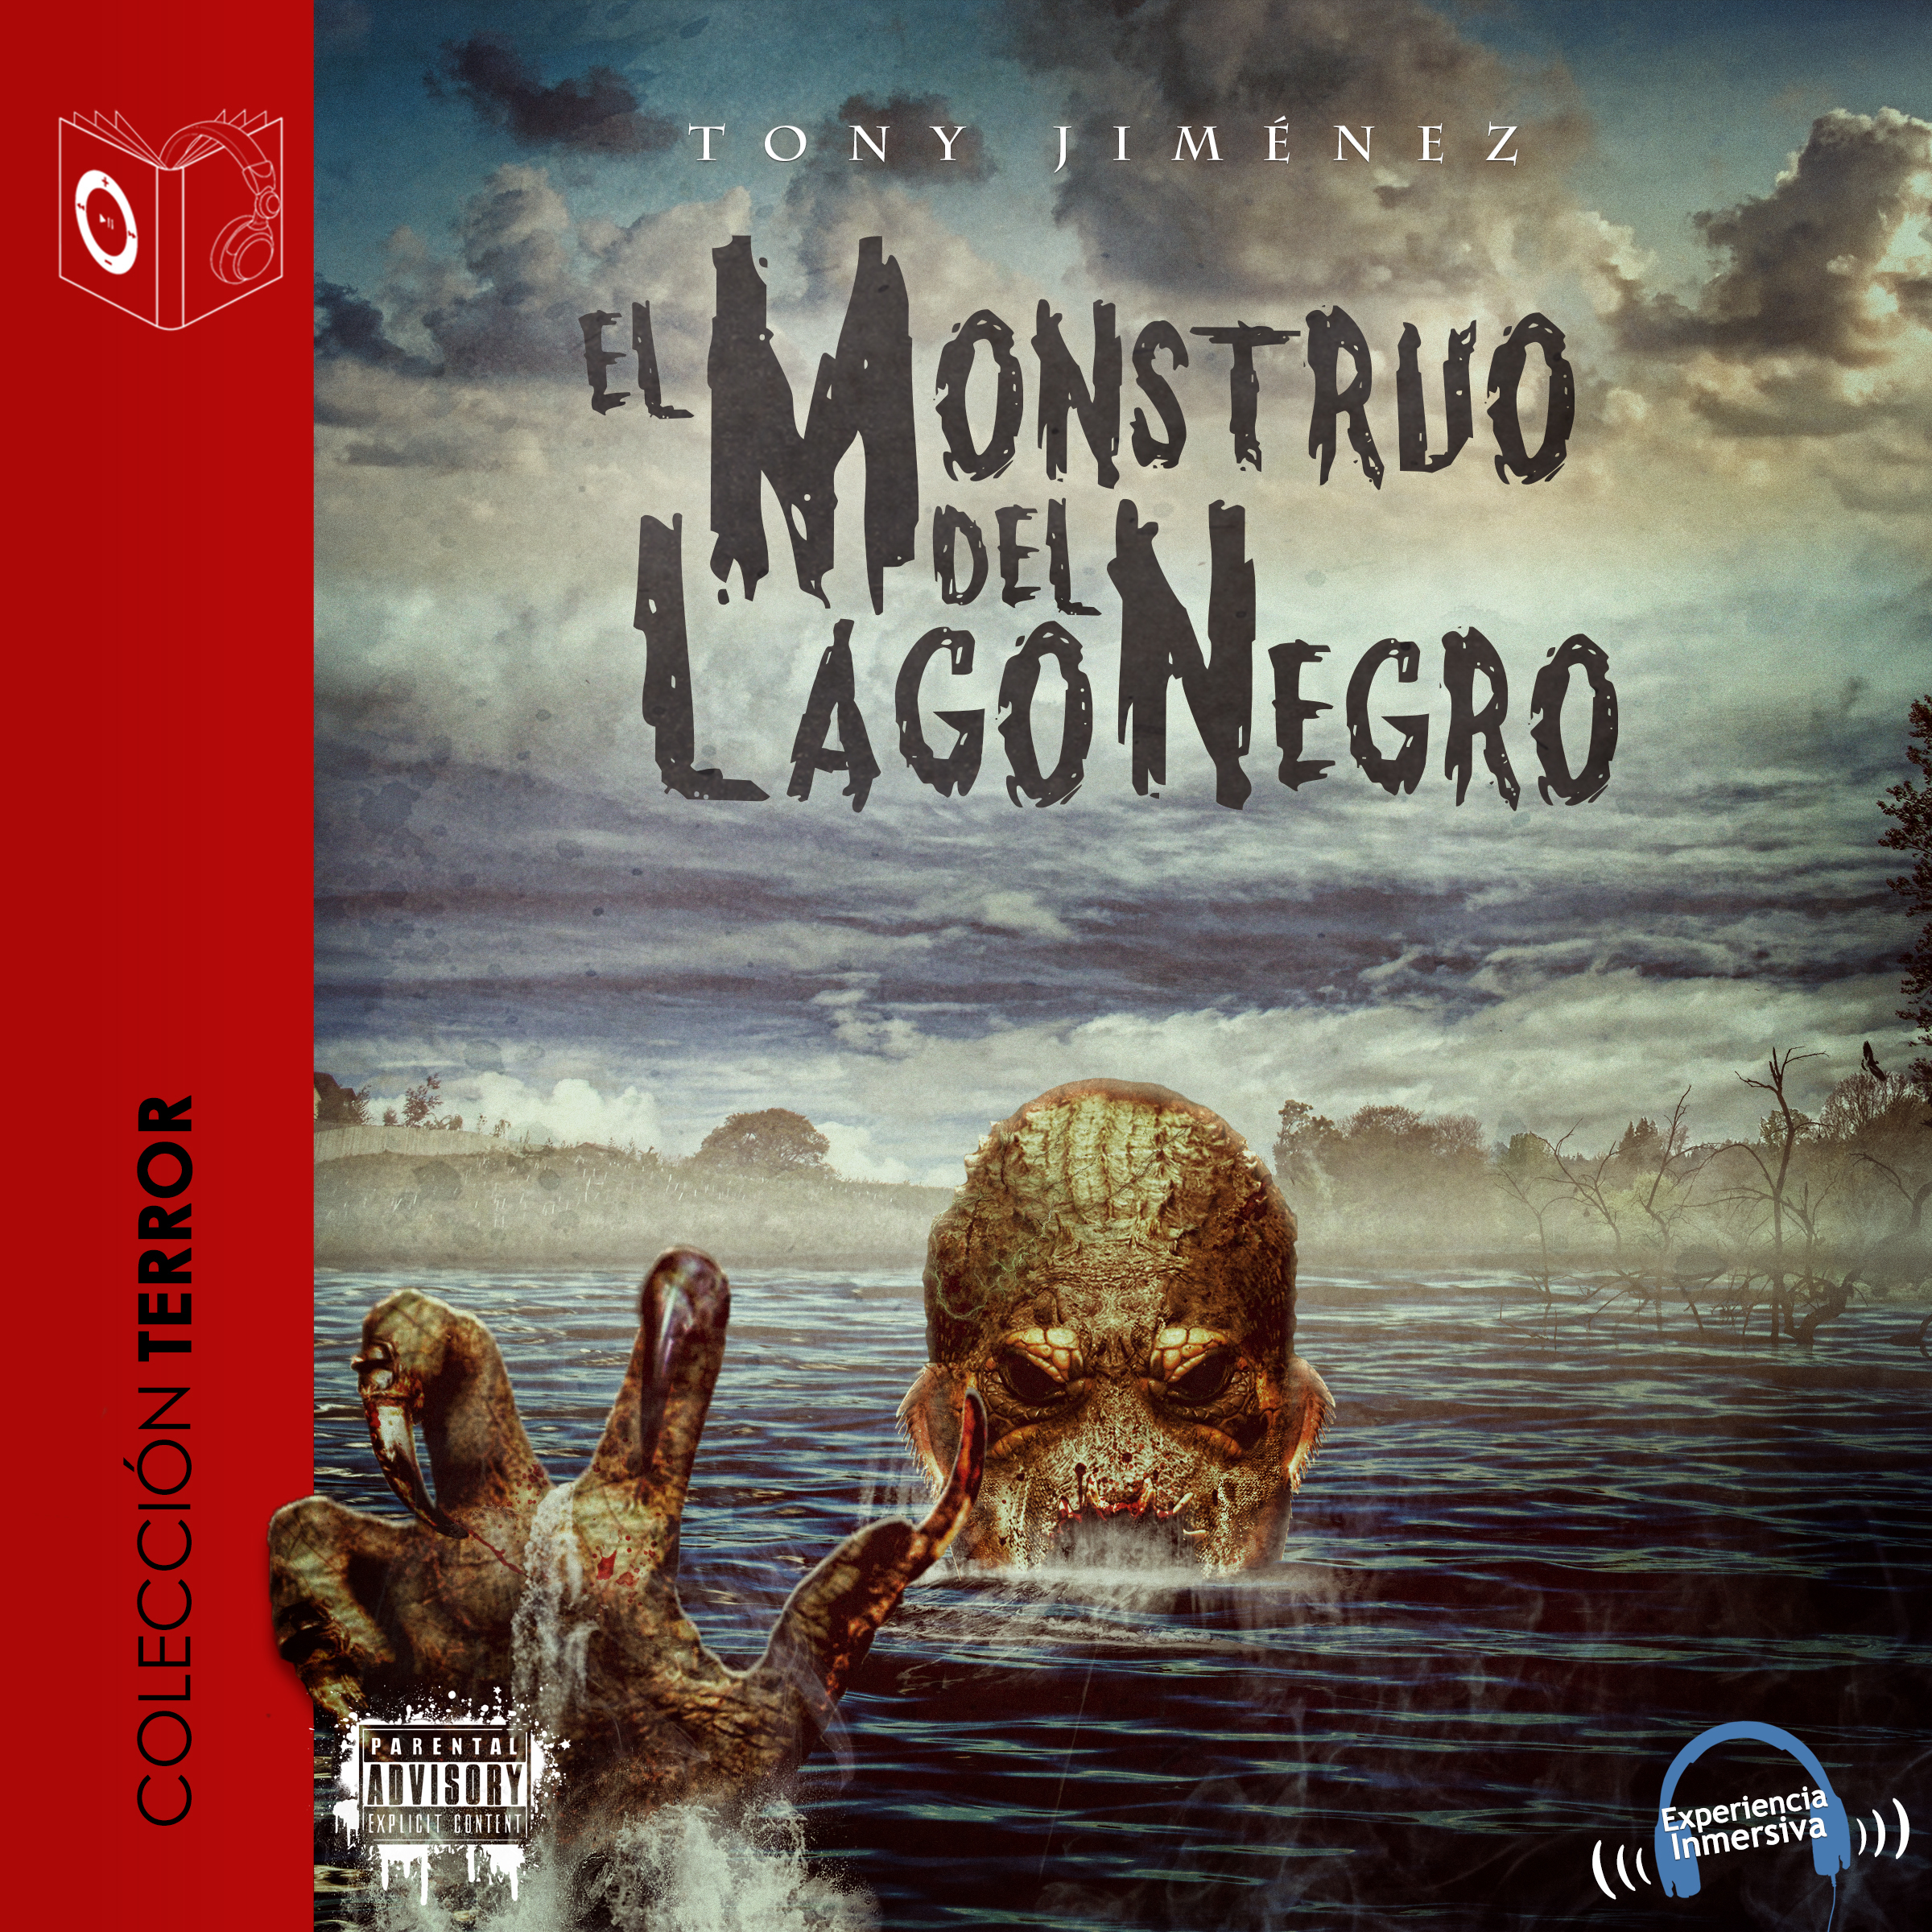 Printable El Monstruo del Lago Negro Audiobook Cover Art